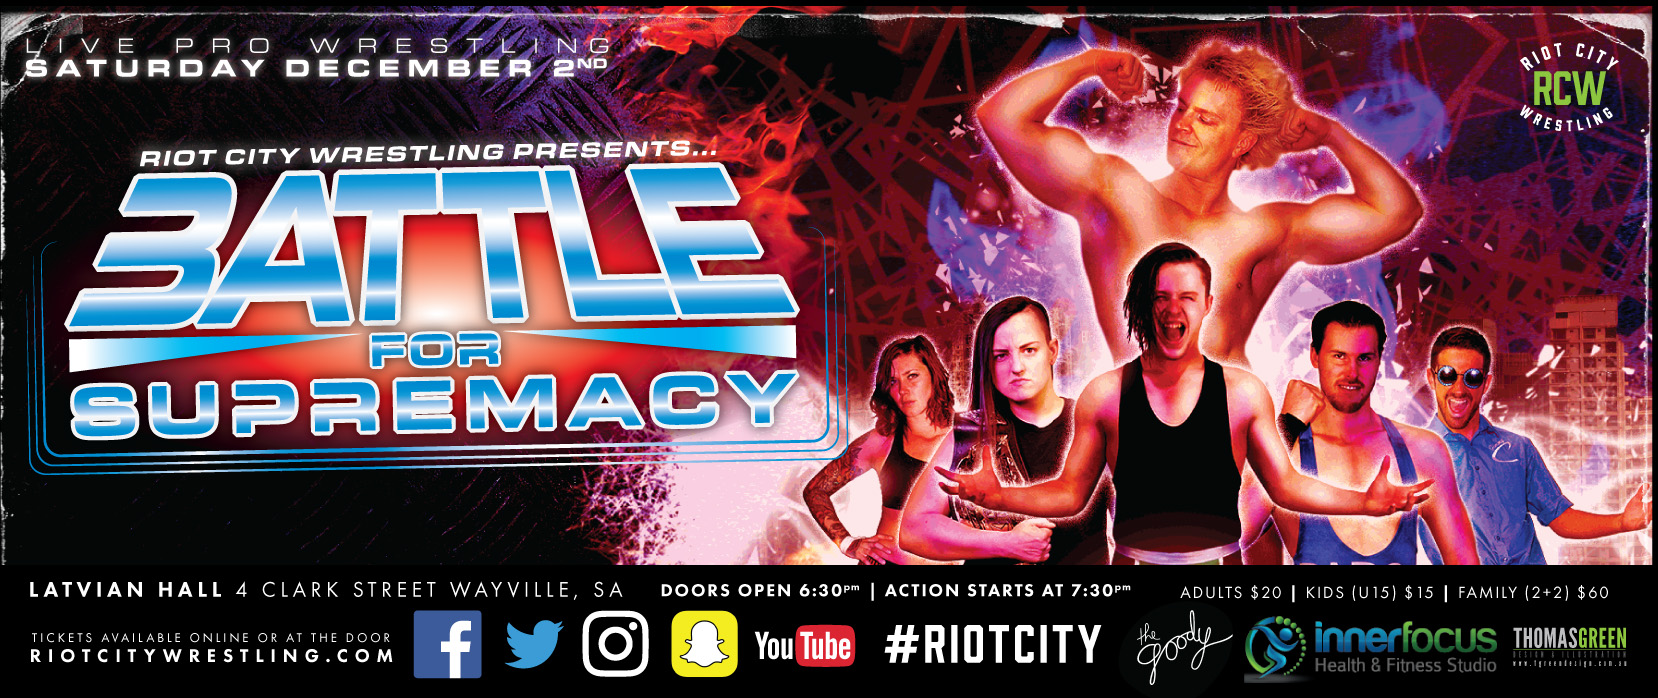 Tickets for Riot City Wrestling: Battle For Supremacy 2017 in Wayville from Ticketbooth